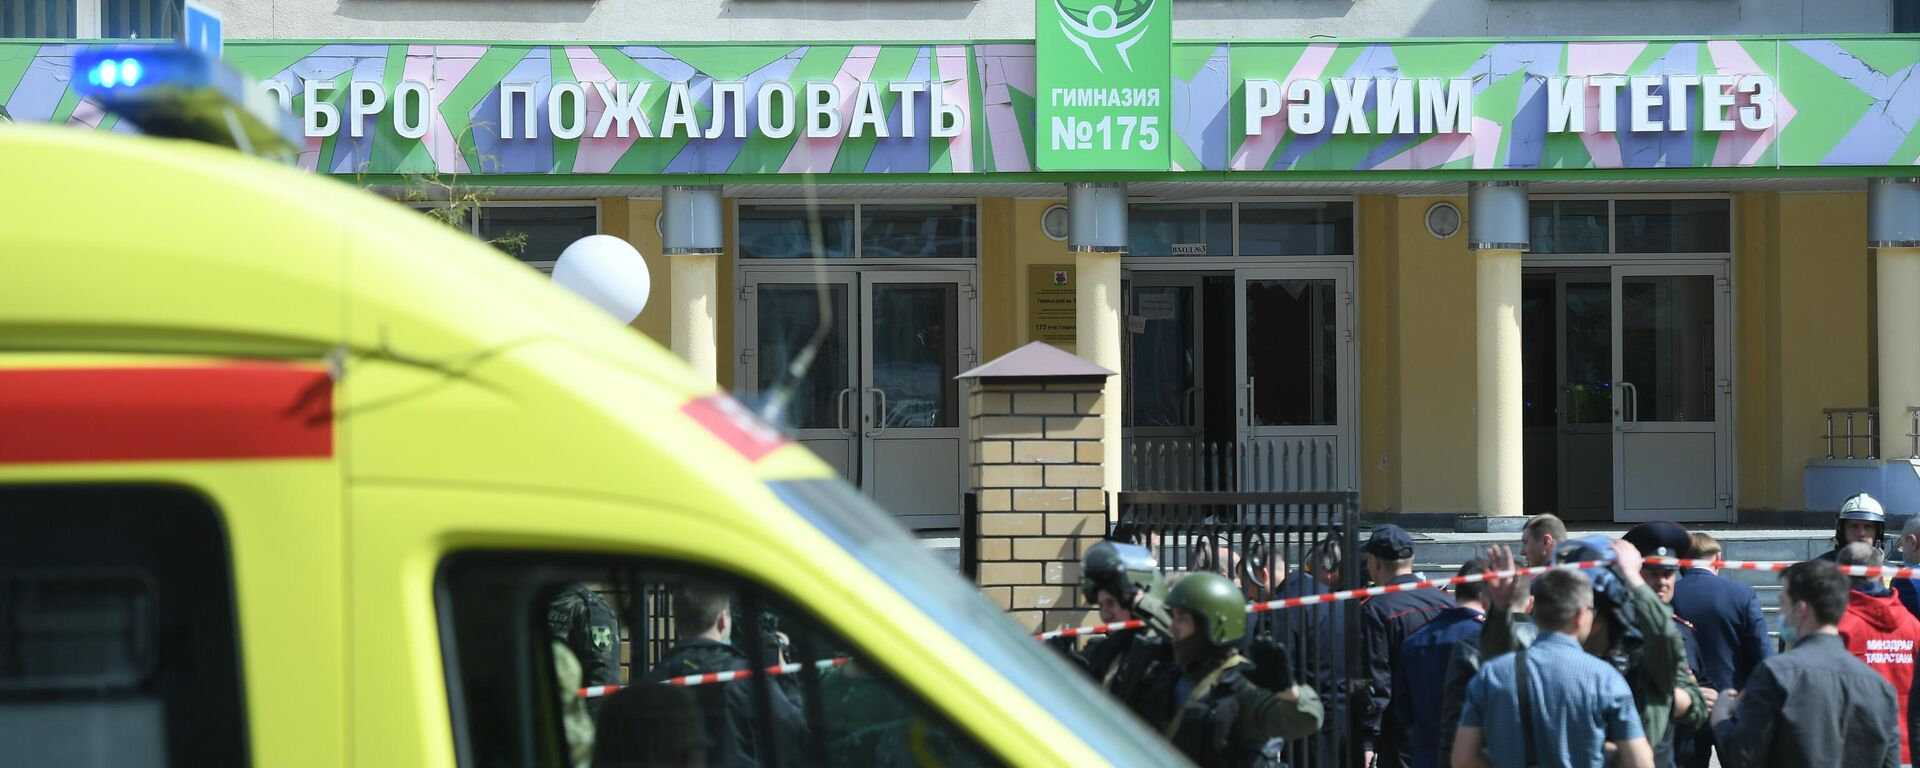 Police and paramedics work at the scene of a shooting at Gymnasium No. 175 in Kazan, Russia's Republic of Tatarstan. According to preliminary data, six schoolchildren and a teacher were killed. The suspected attacker, a 17-year-old male, was detained earlier in the day. - Sputnik Узбекистан, 1920, 11.05.2021